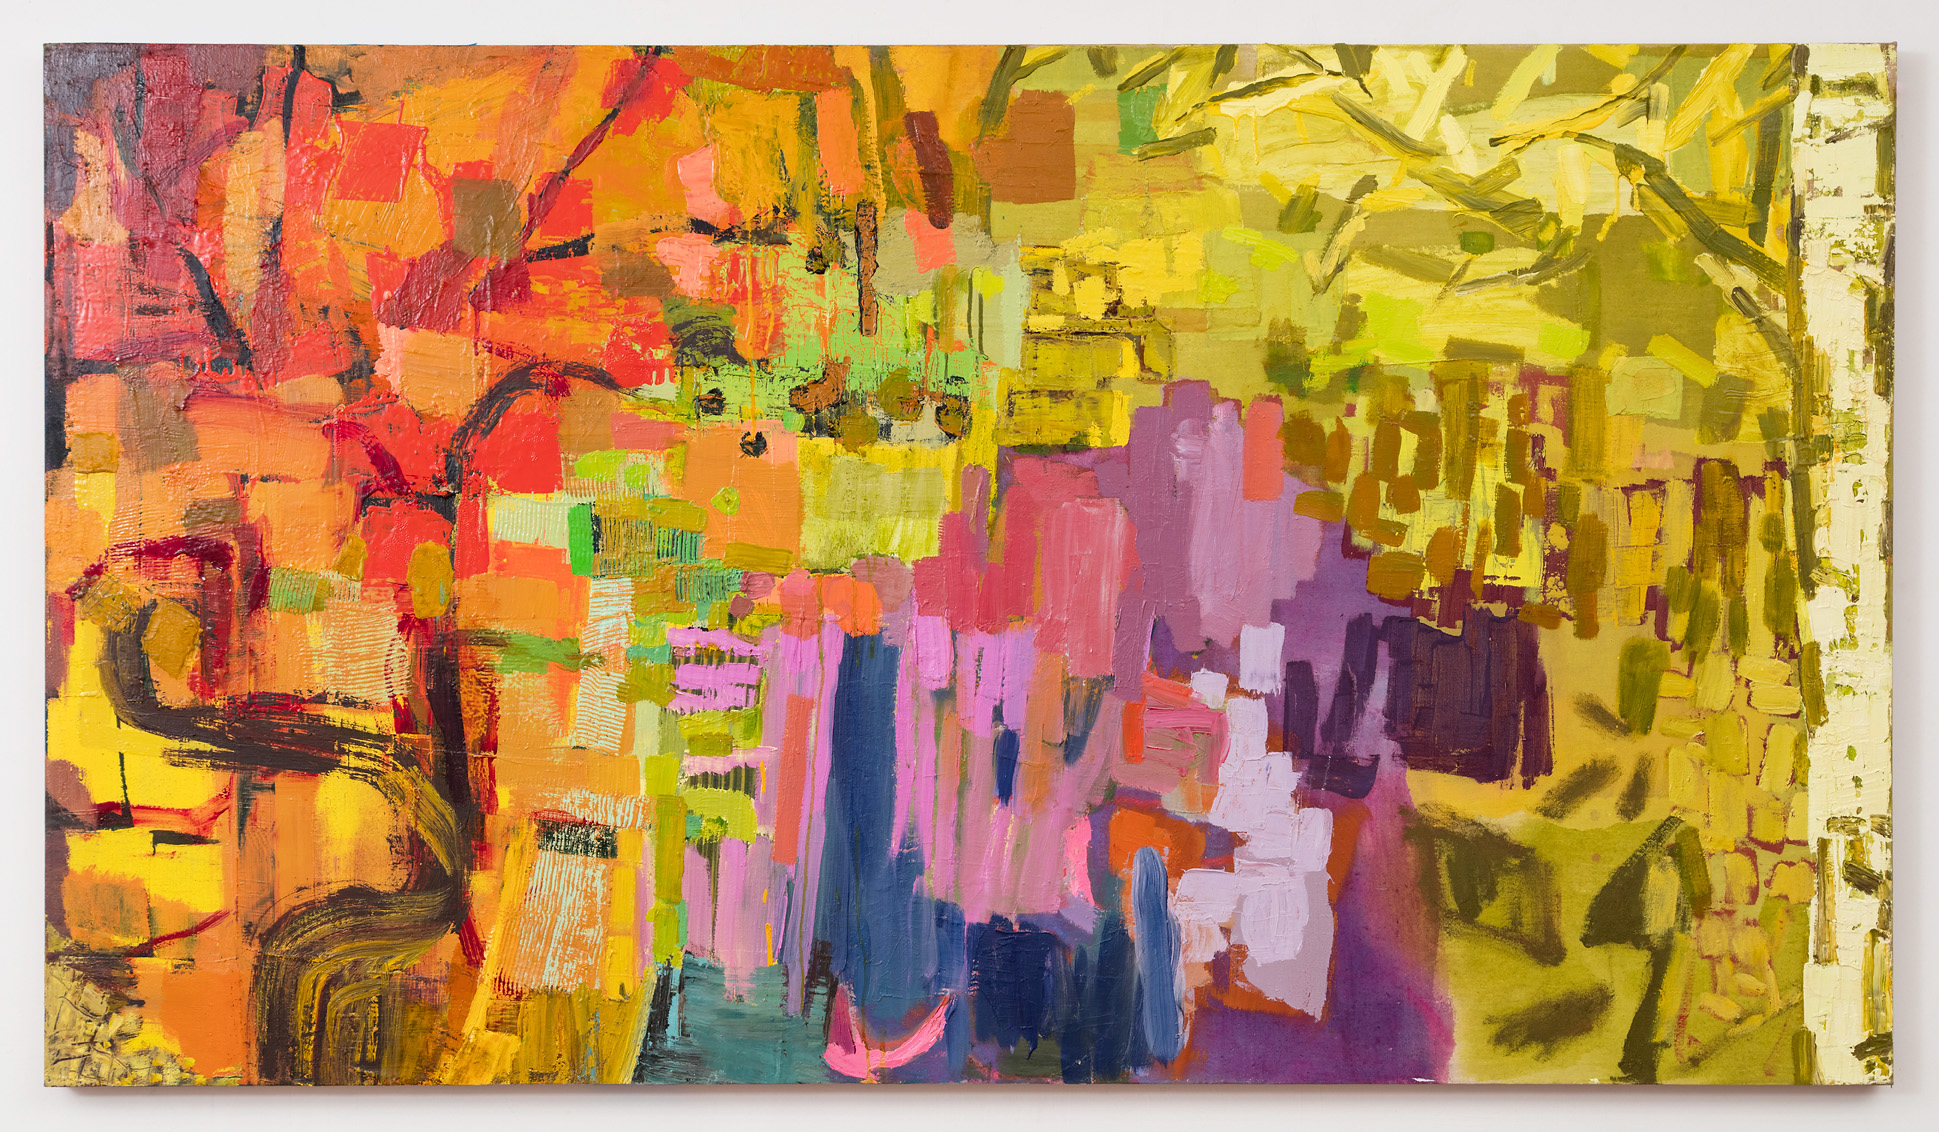 "Tapestry  41 x 72"" oil on linen"